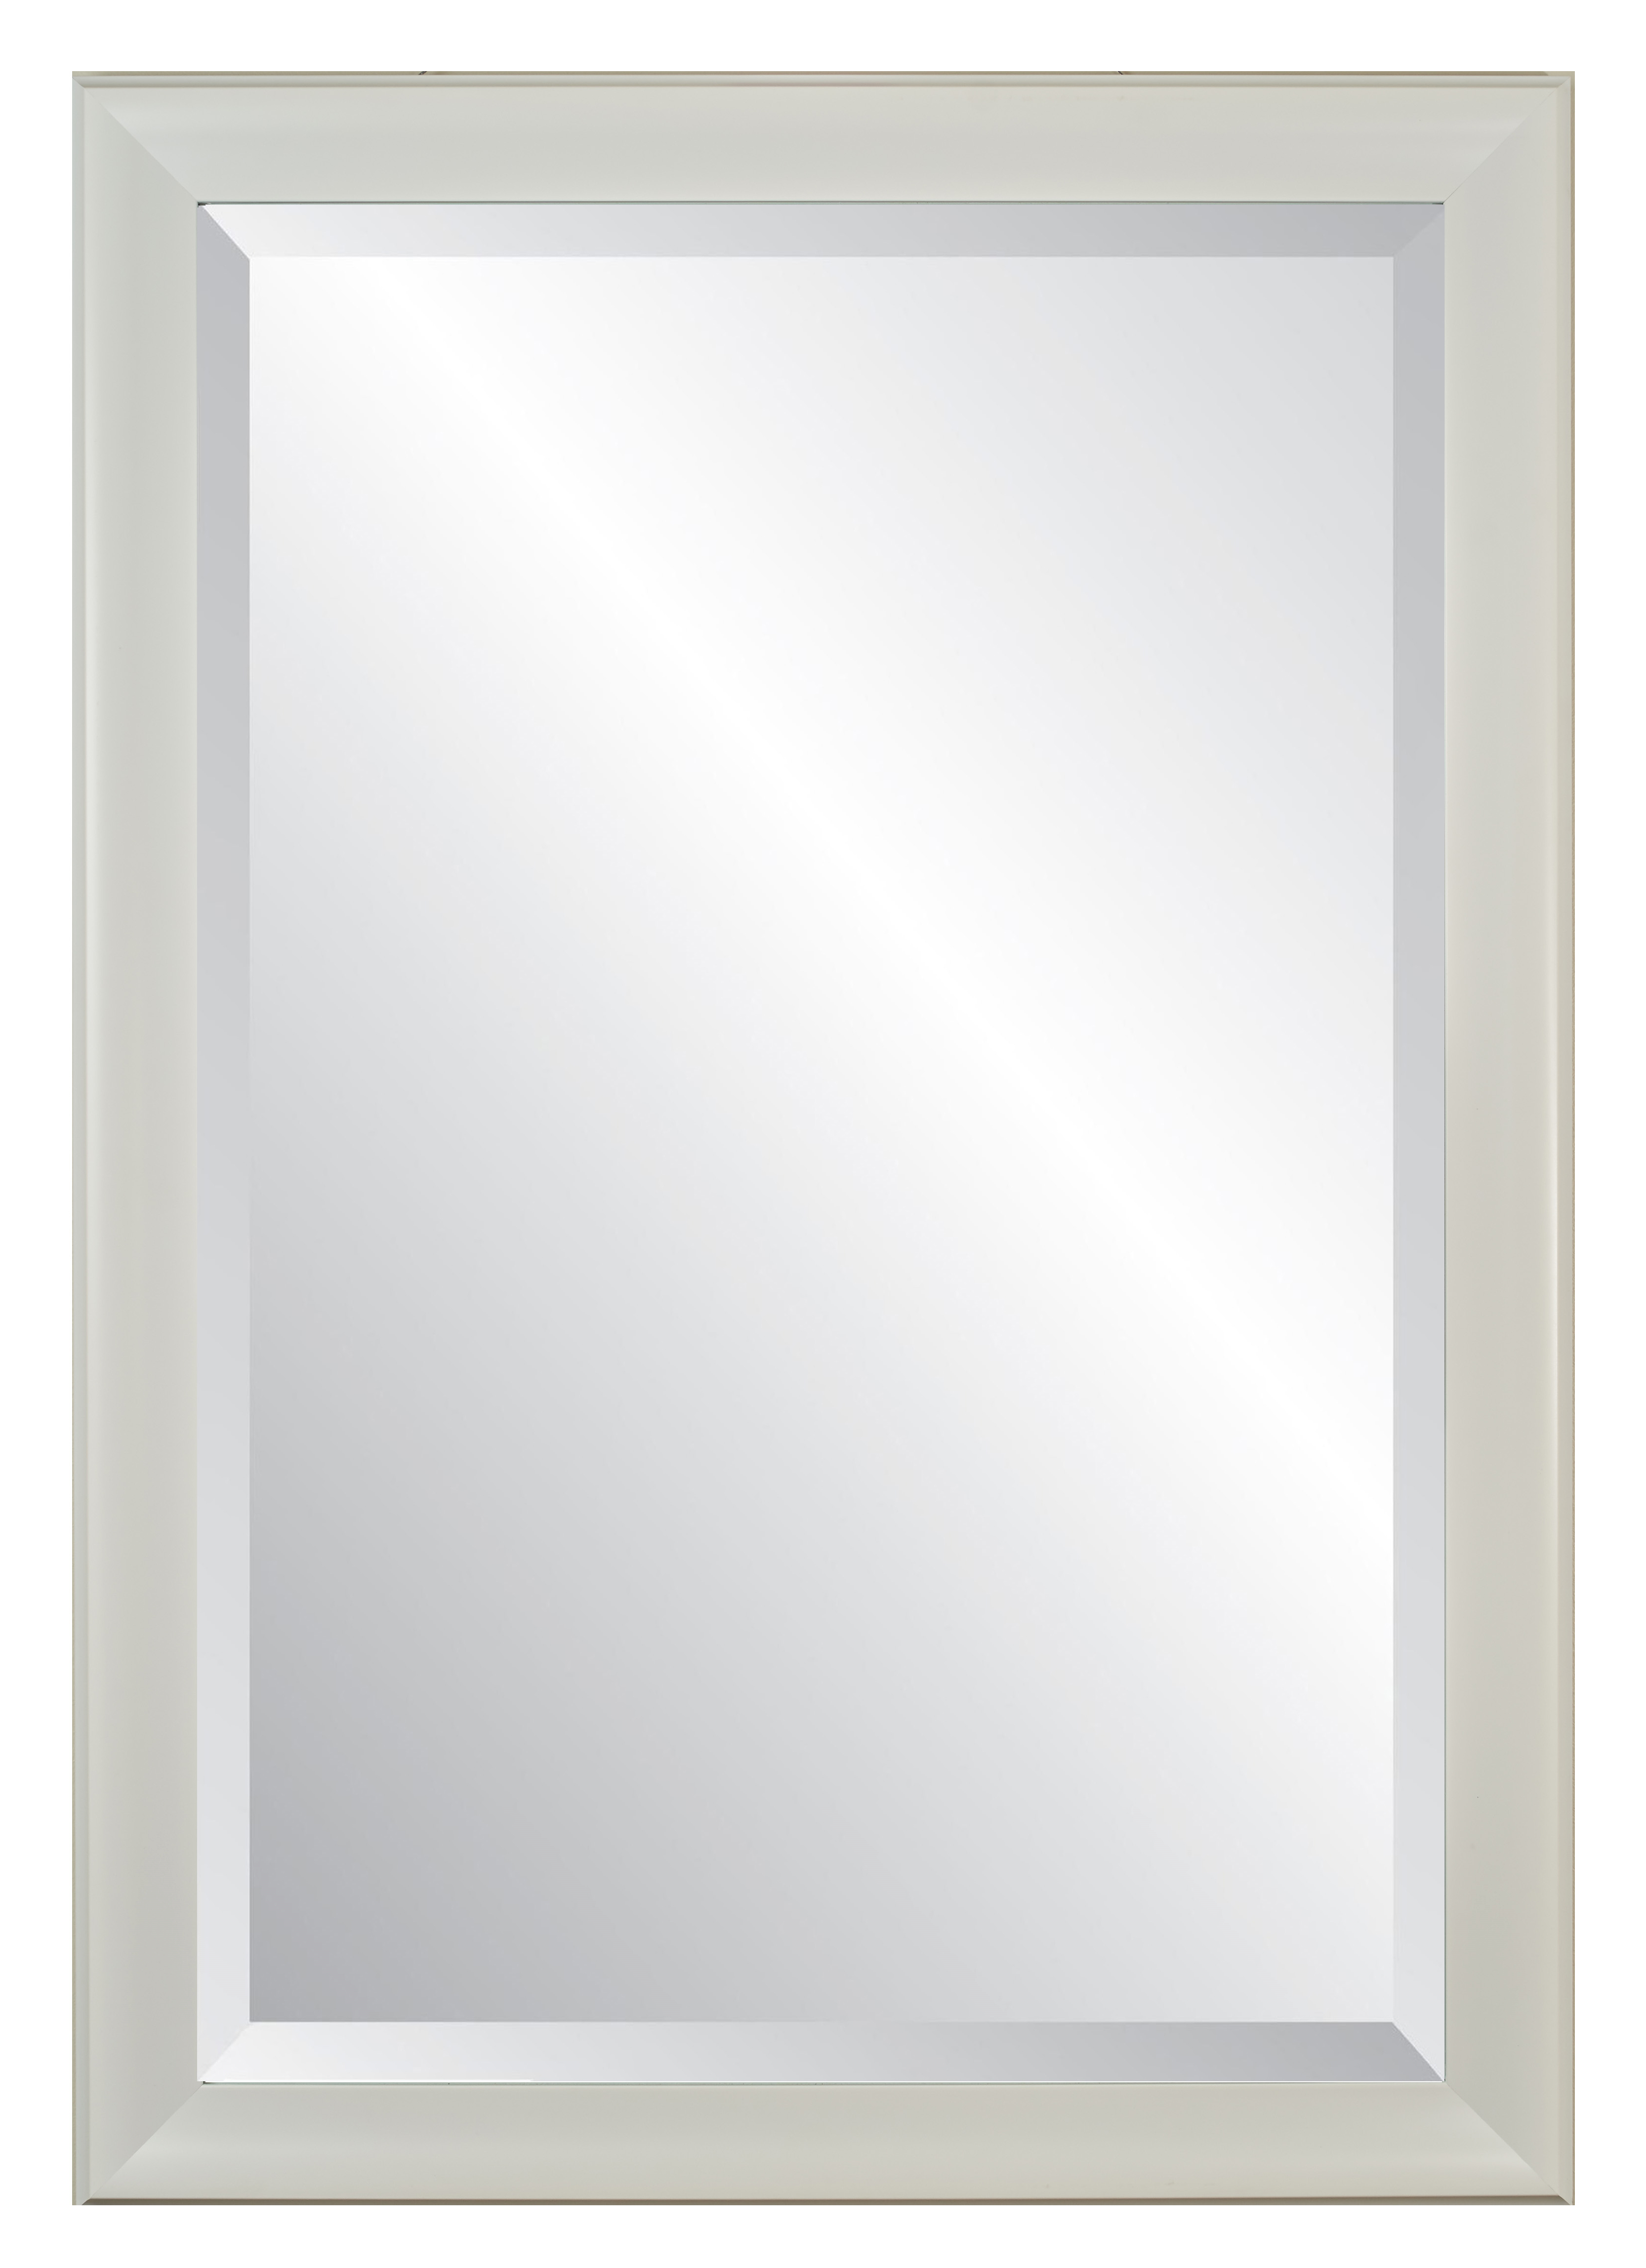 "Lakeside White Frame, Beveled Wall Mirror 28"" X 40"" Intended For Most Up To Date White Framed Wall Mirrors (View 2 of 20)"